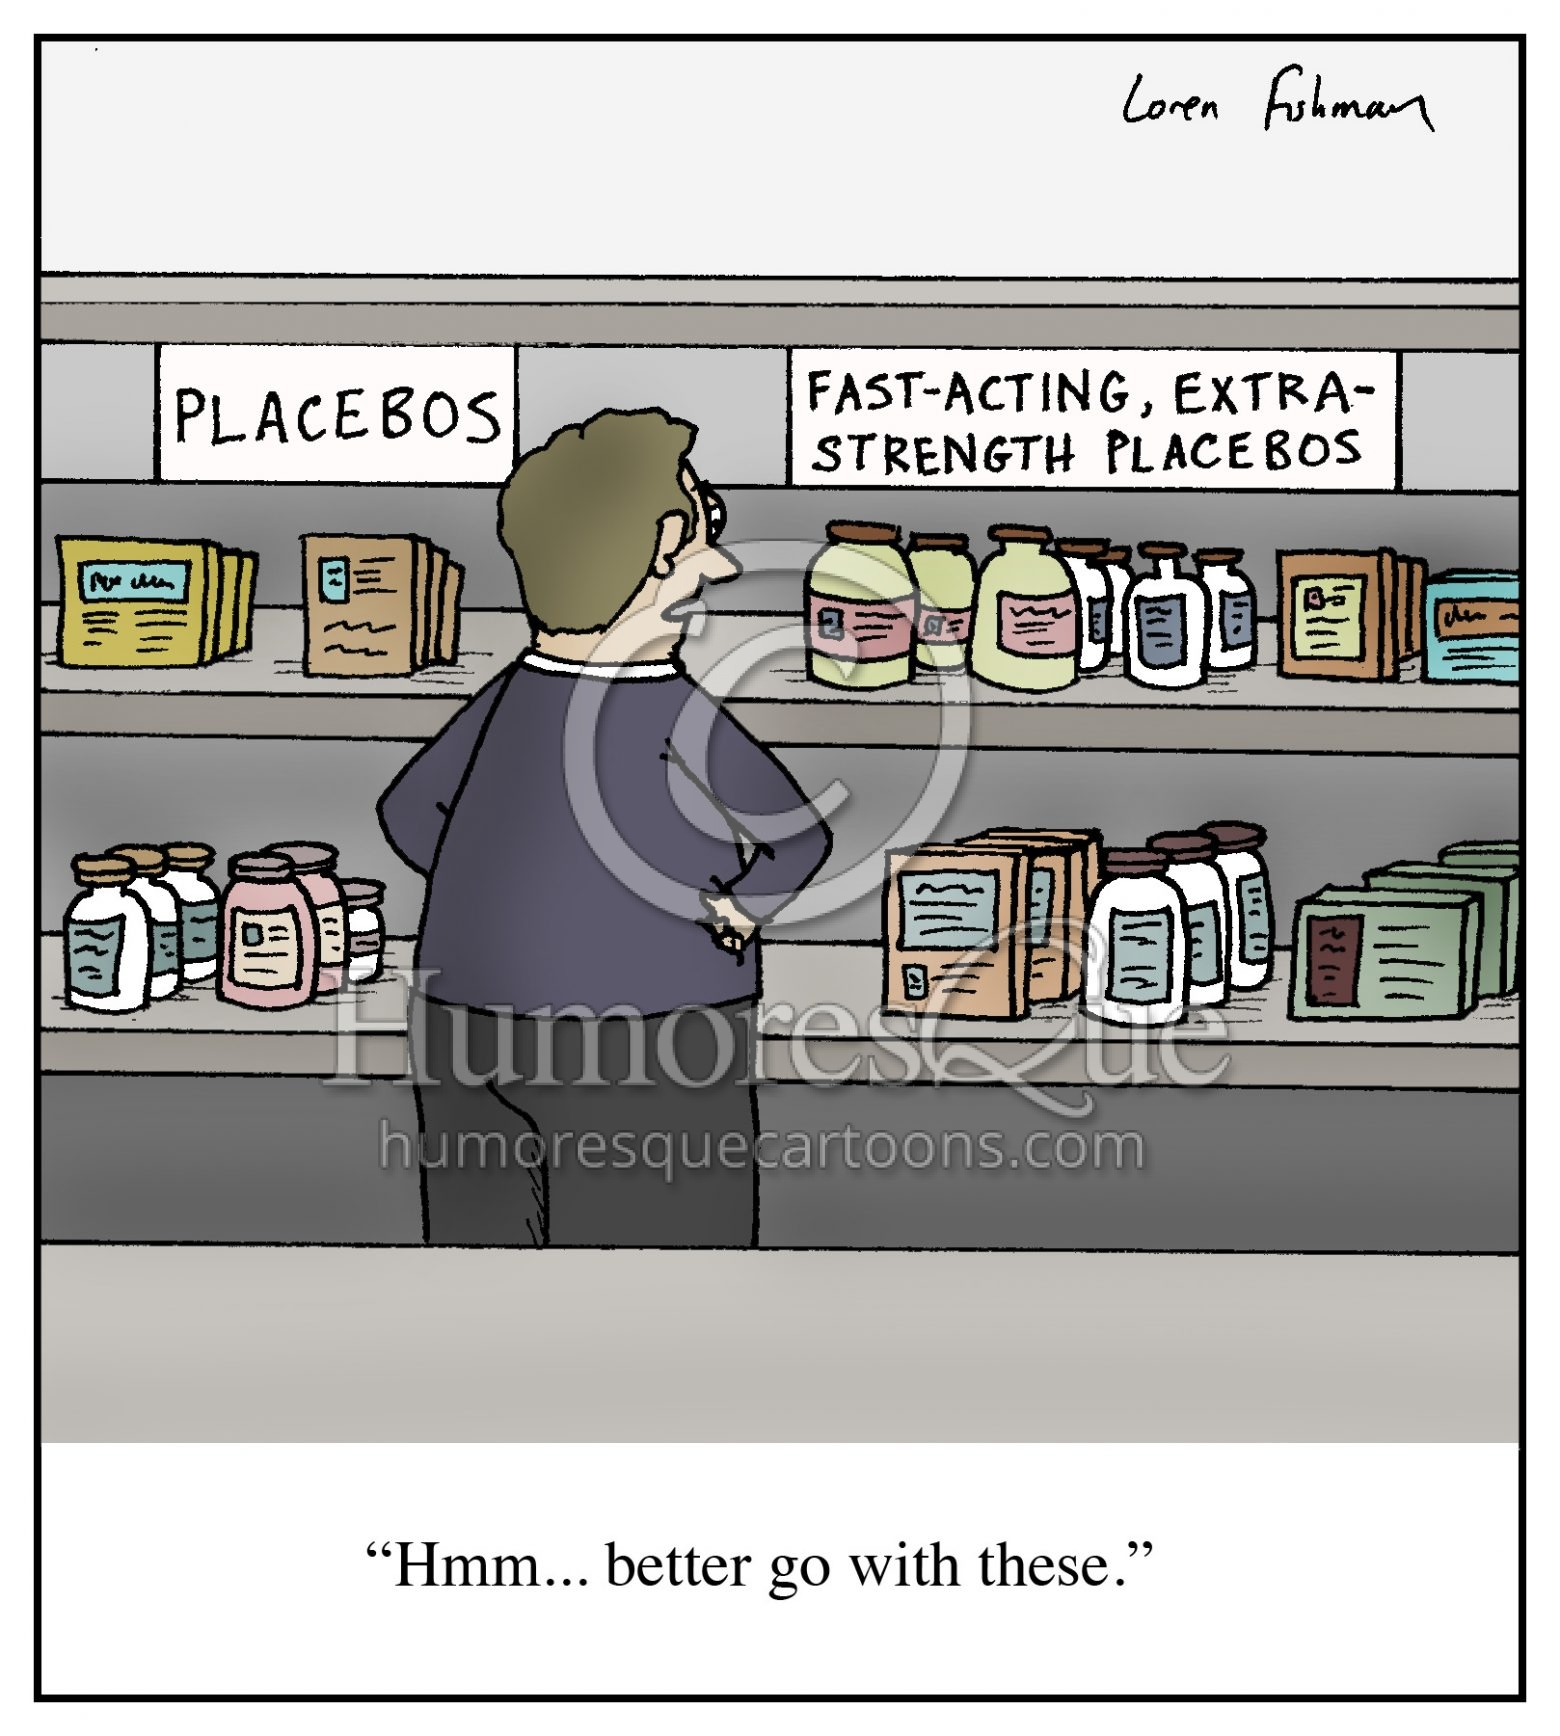 fast acting extra strength placebos cartoon